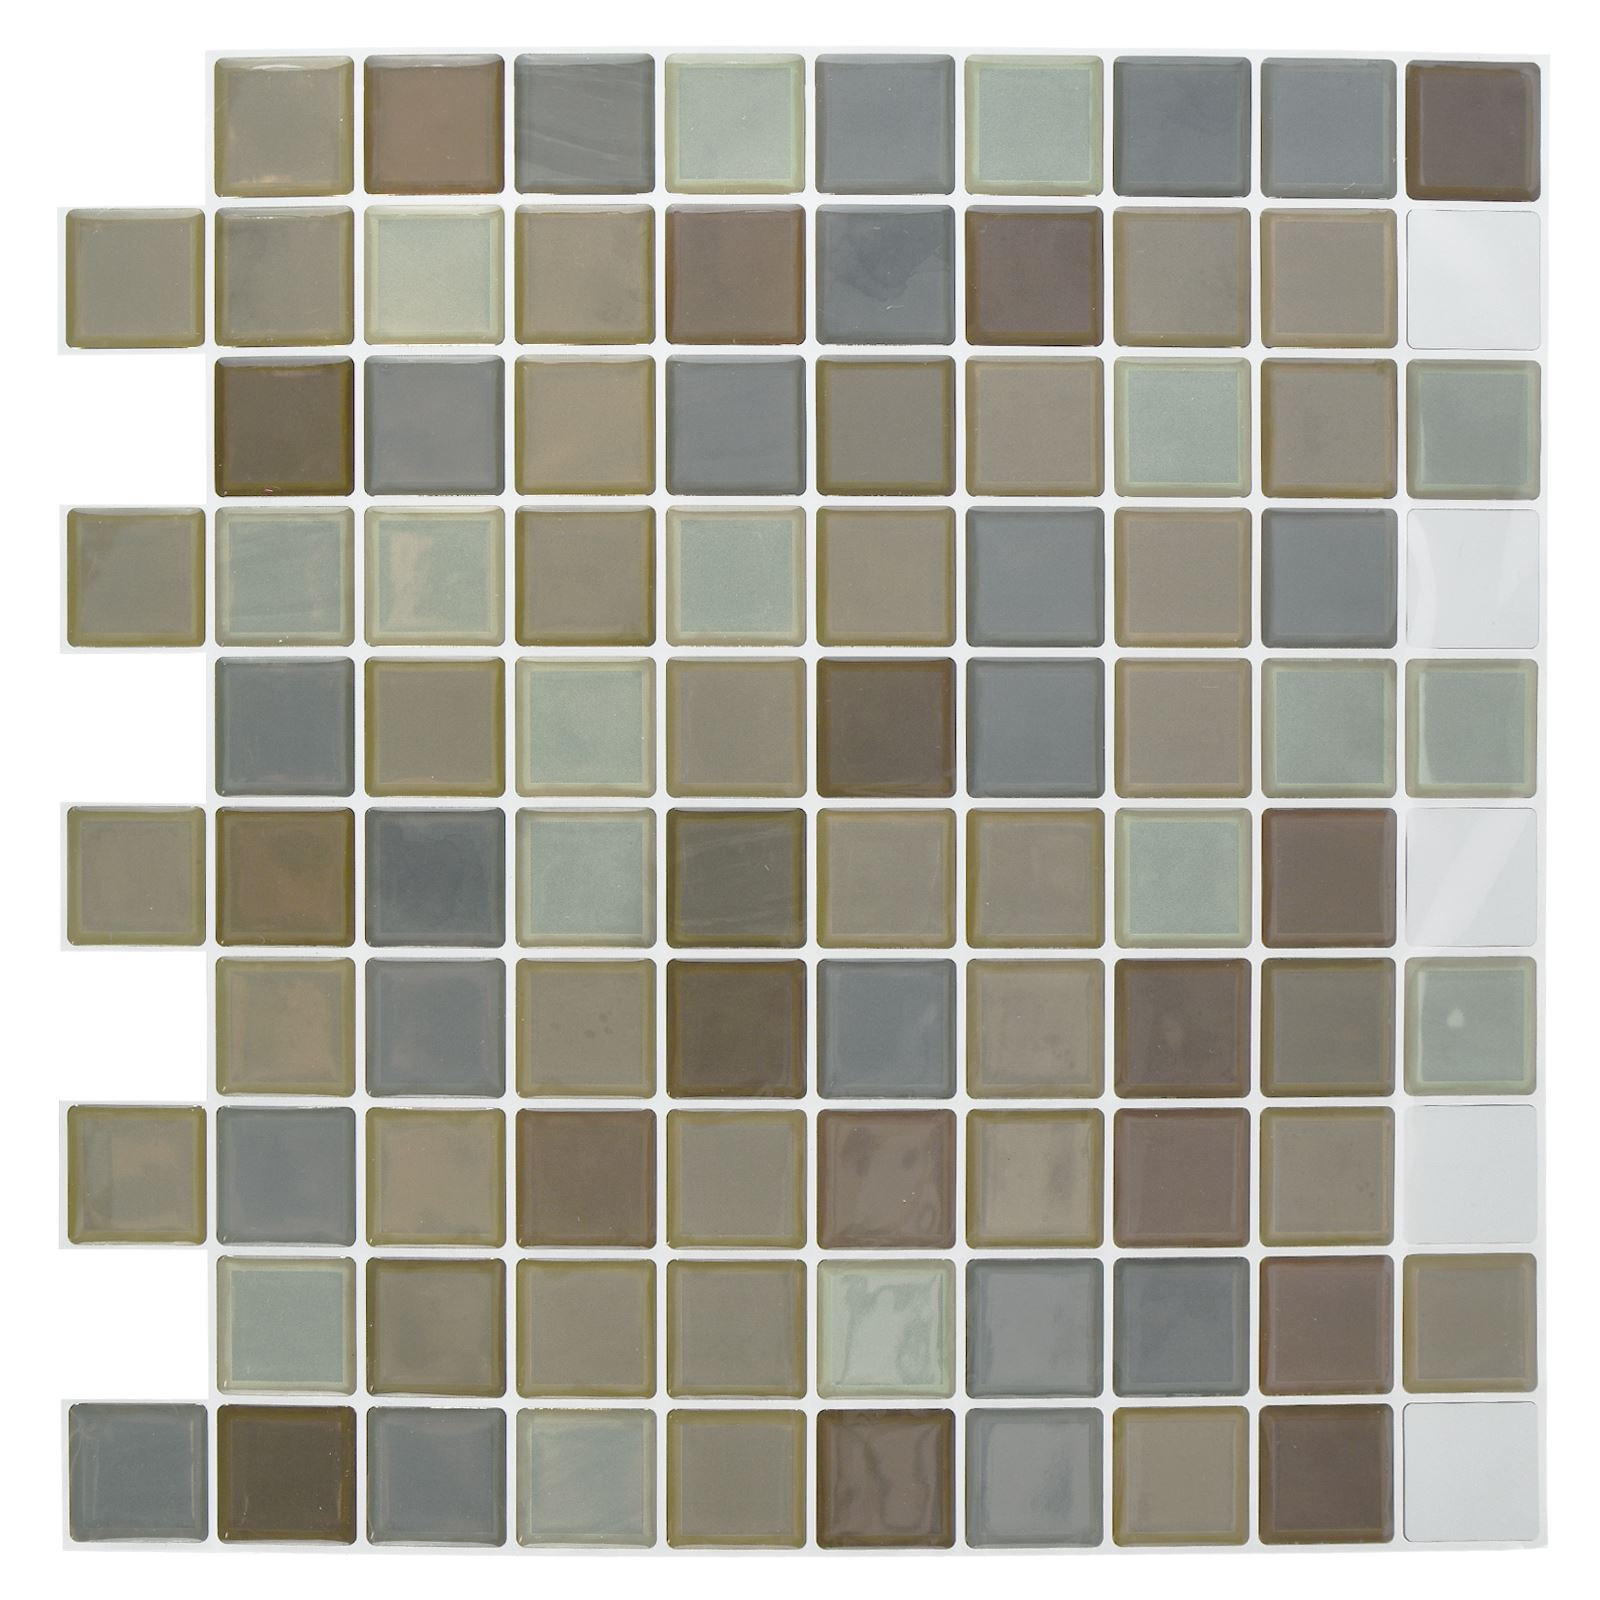 Ac Carrelage Self Adhesive Mosaic Tile Stickers Bathroom Kitchen